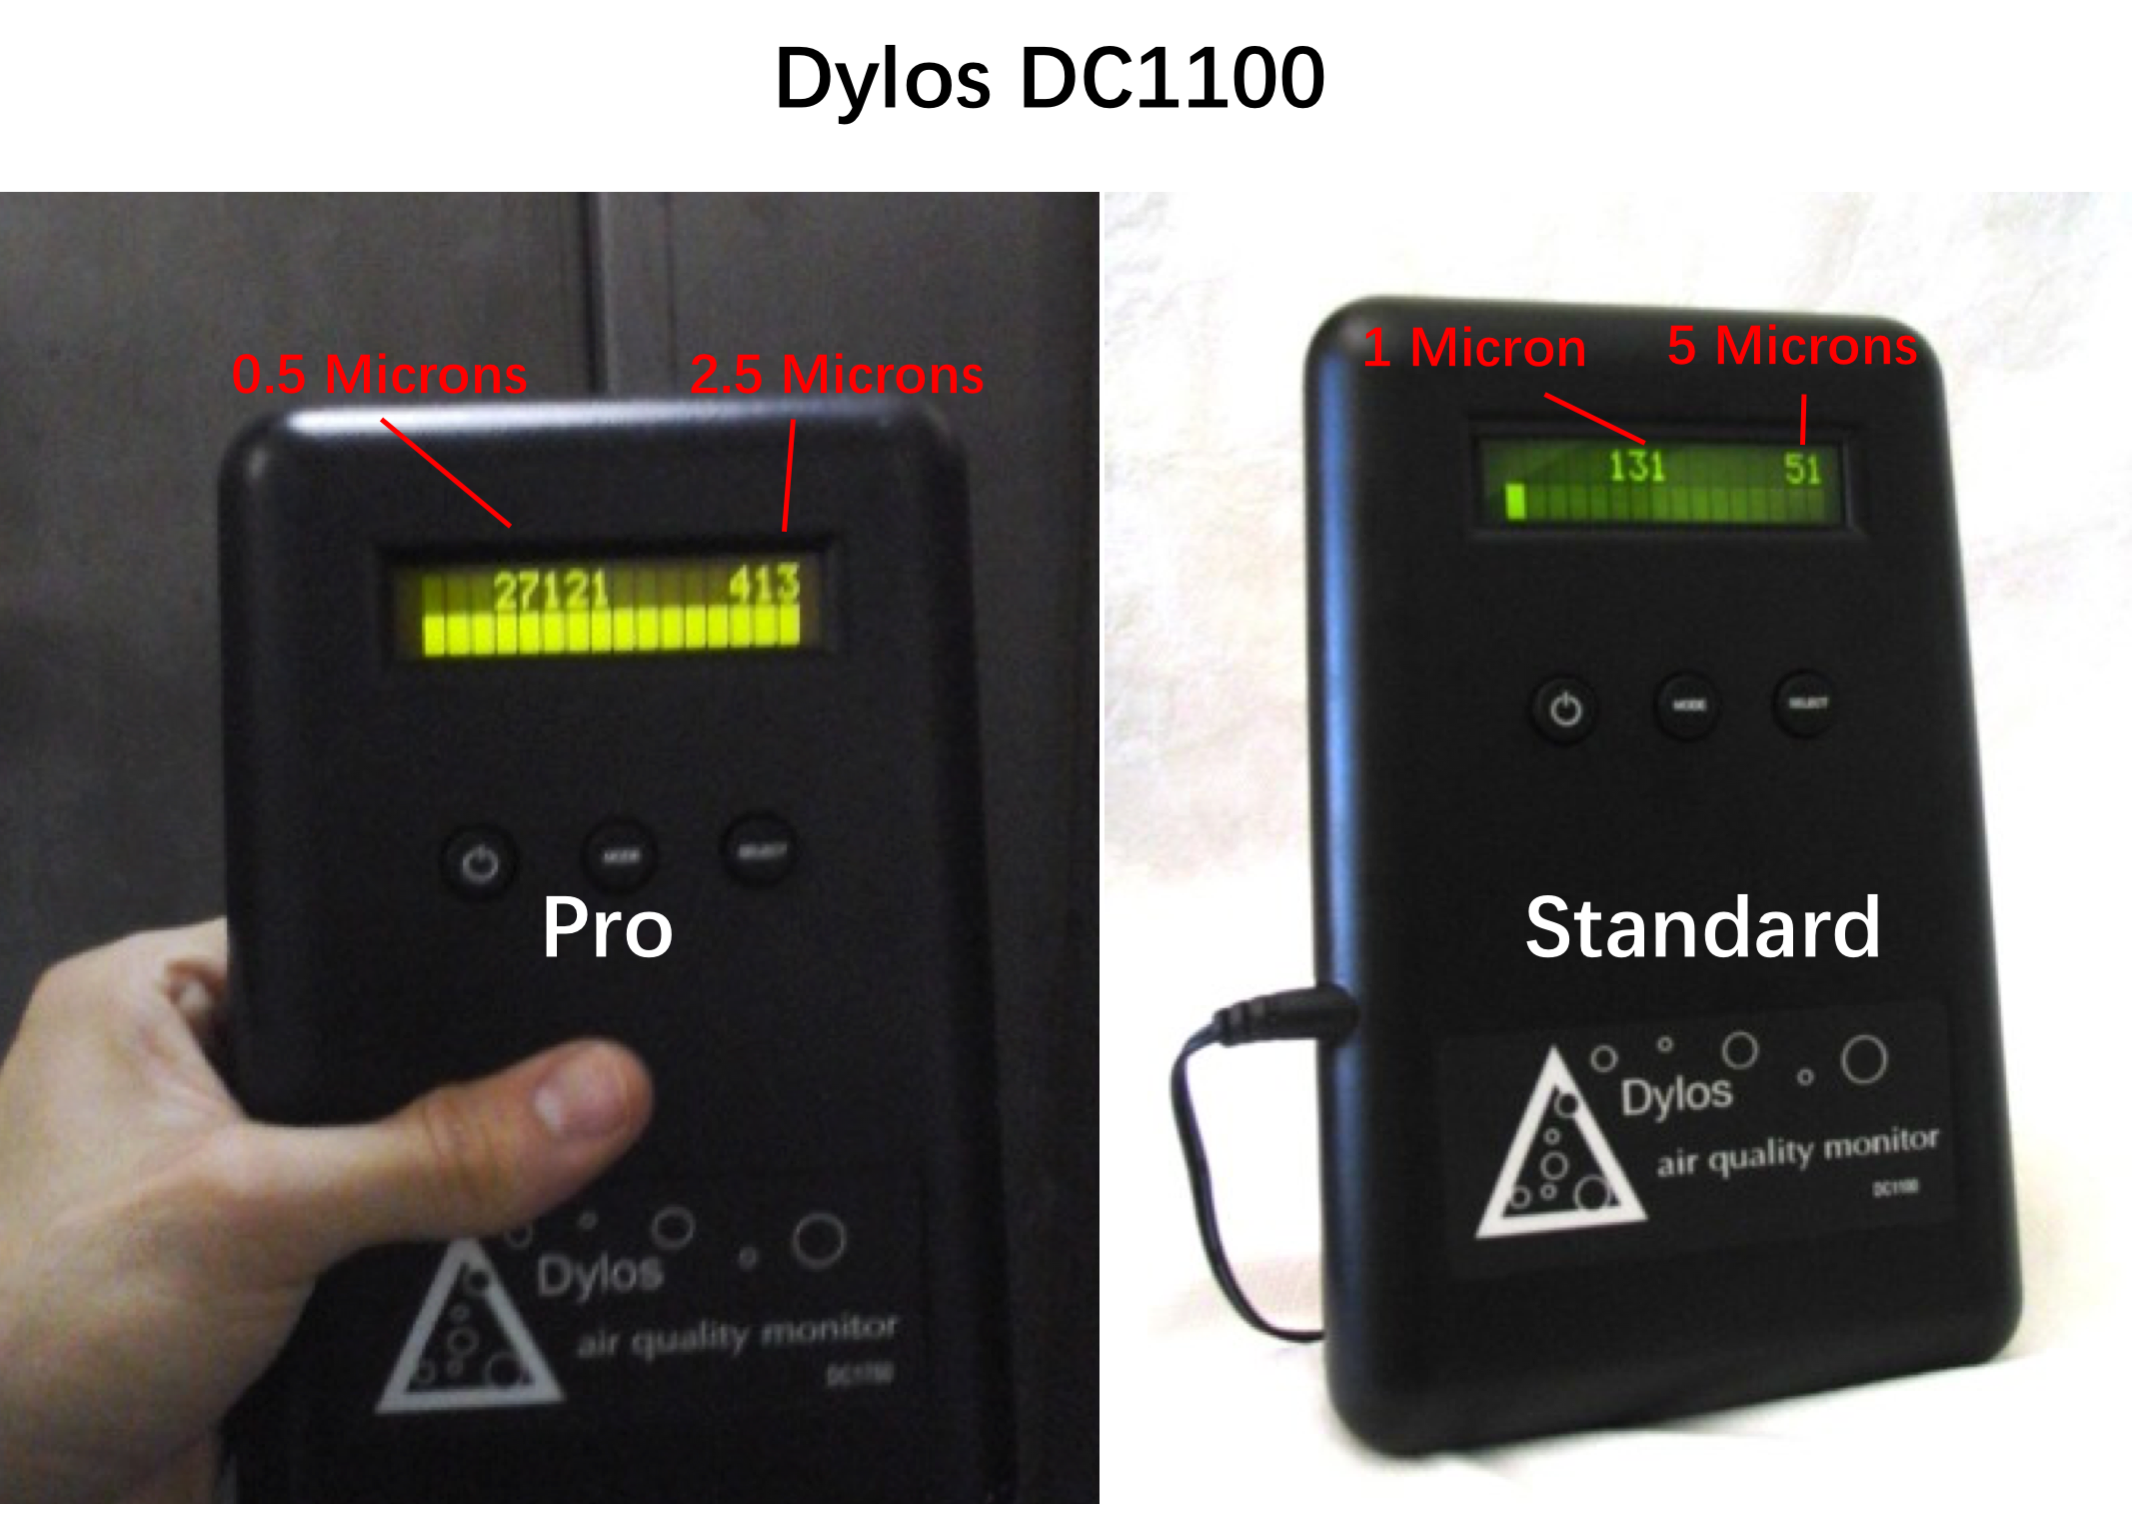 Dylos air quality monitor pro DC1100